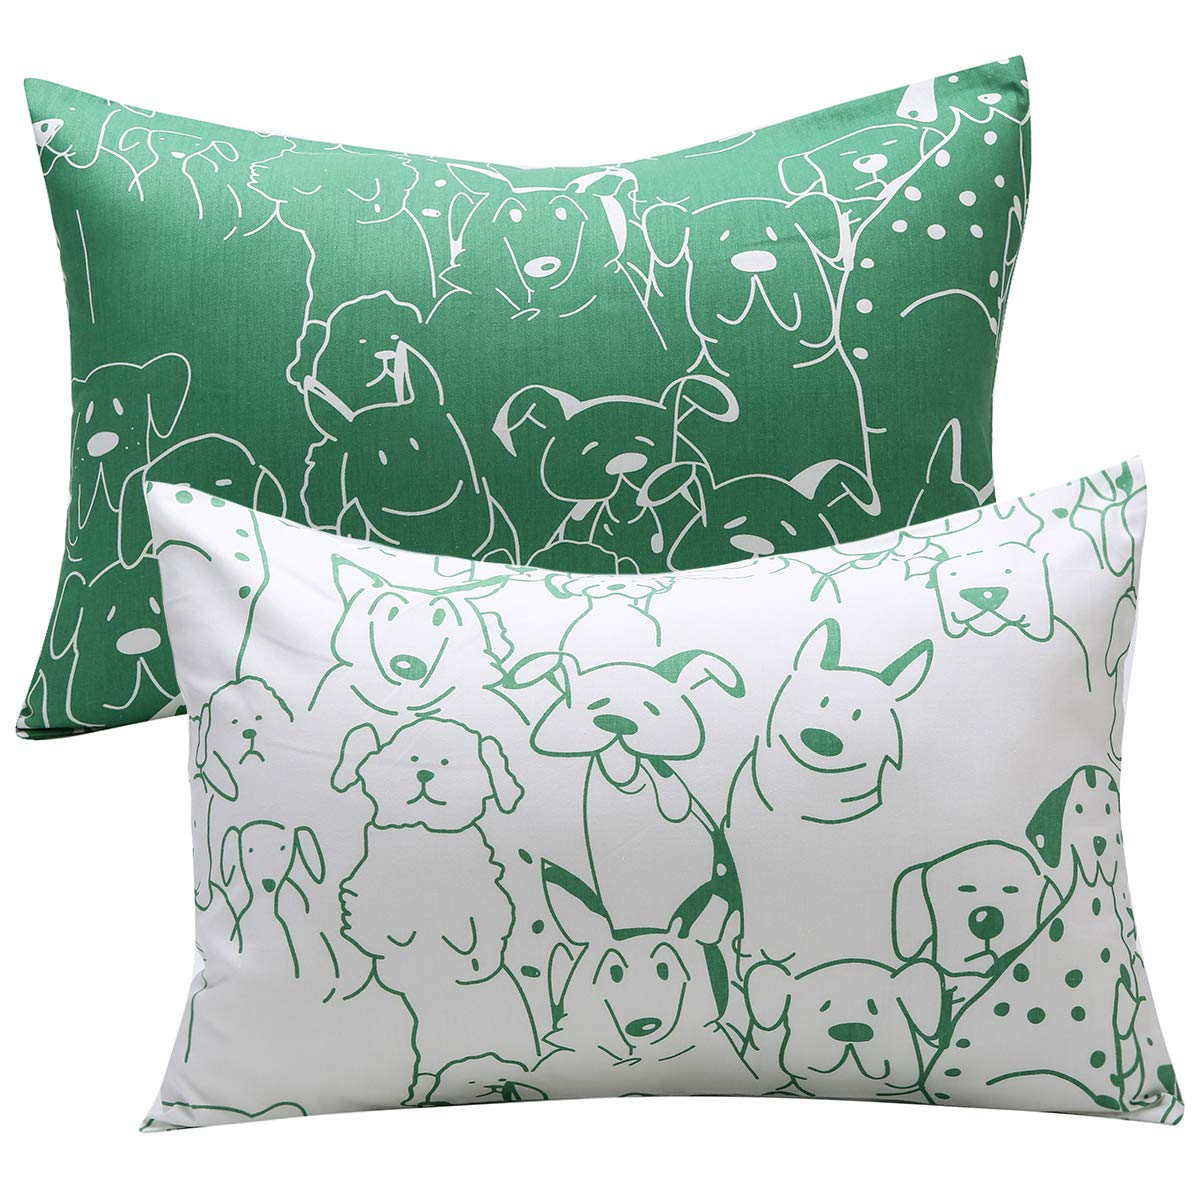 UOMNY Kids Toddler Pillowcases 2 Pack 100% Cotton Pillow Cover Pillowslip Case Fits Pillows sizesd 13 x 18 or 12x 16 for Kids Bedding Pillow Cover Baby Pillow Cases Dog Kids' Pillowcases Green